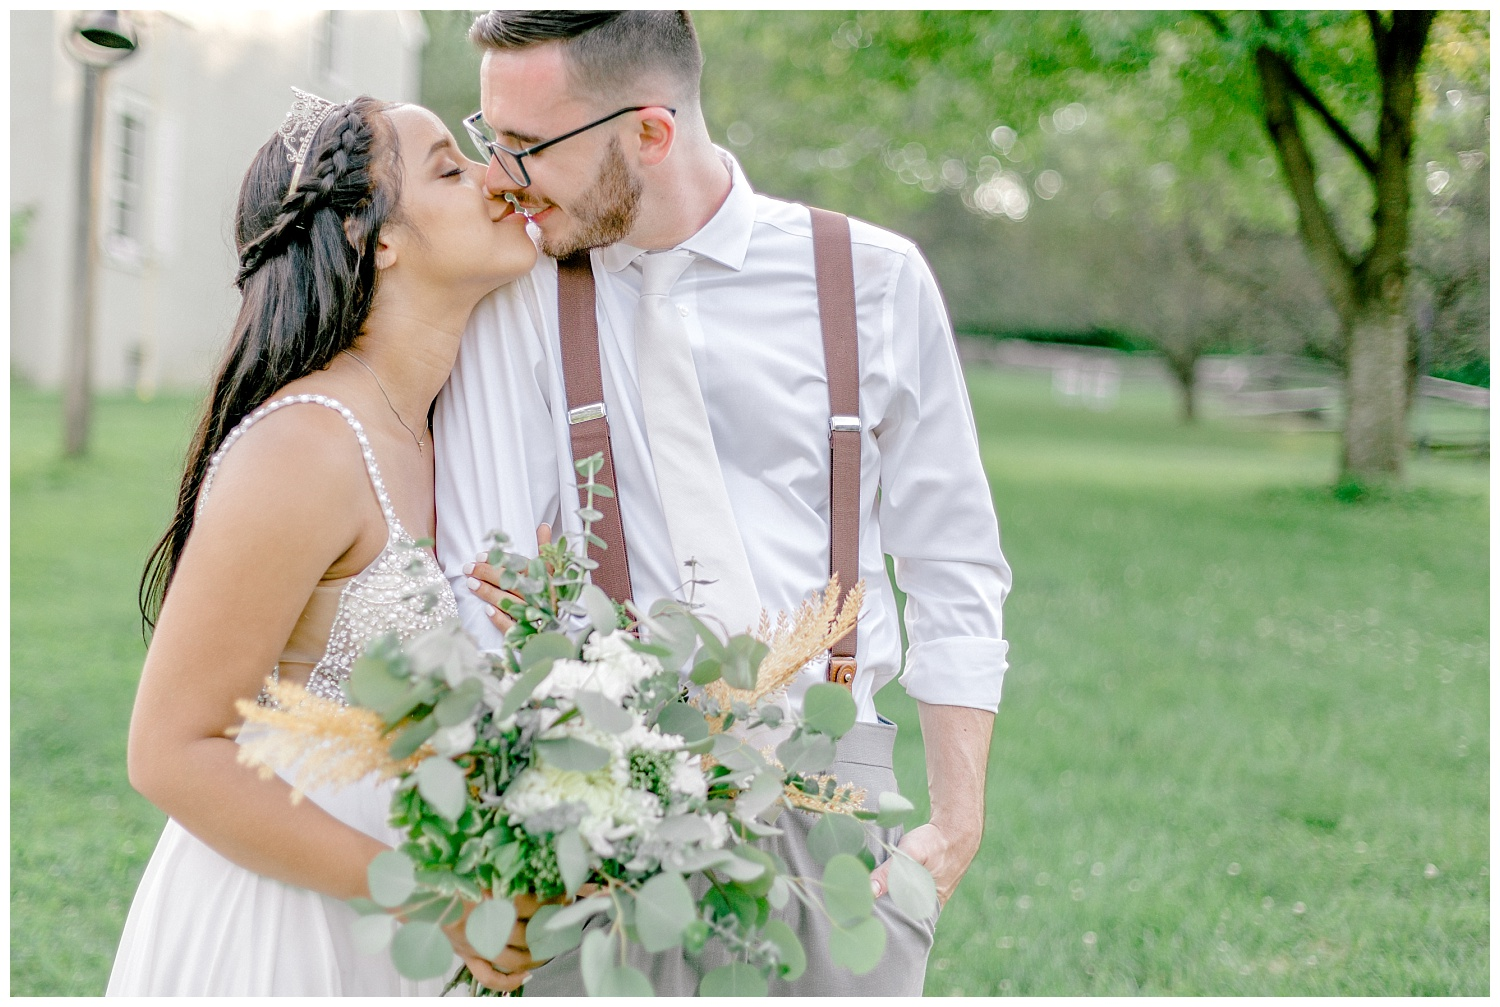 Olive green and white rustic barn wedding at burnside plantation in bethlehem pennsylvania by PA based destination wedding and lifestyle photographer Lytle photography (78).jpg